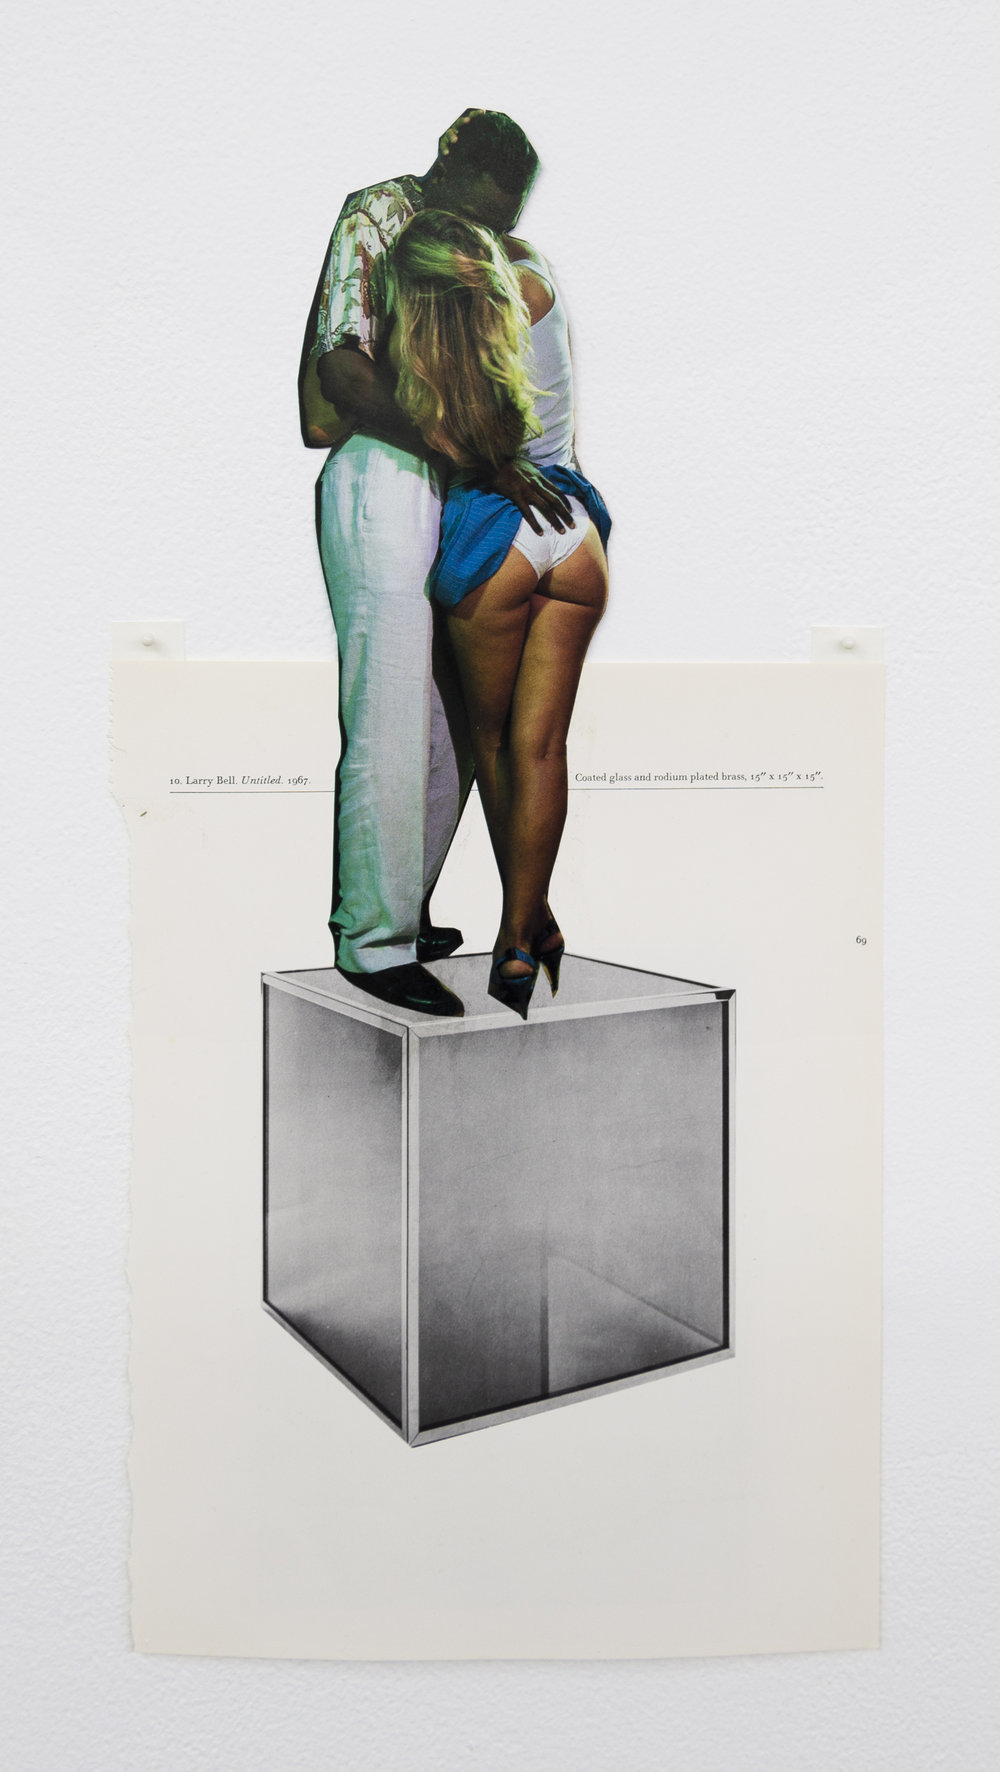 Narcissister,  Studies for Participatory Sculptures, Untitled (Performing an interracial couple, after Larry Bell) , 2018, Paper, rubber cement, 17 x 8.5 in